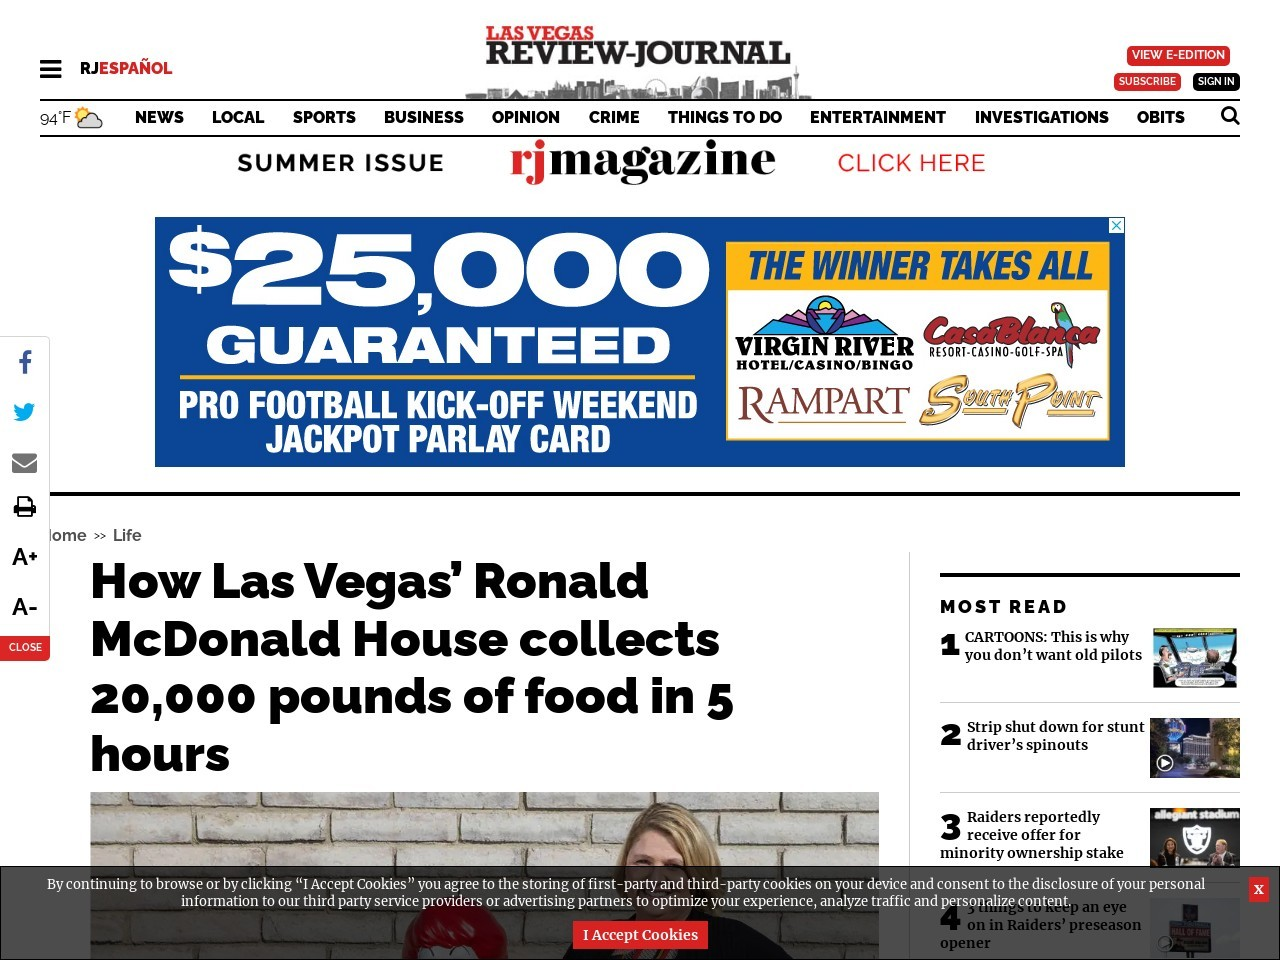 How Las Vegas' Ronald McDonald House collects 20,000 pounds of food in 5 hours